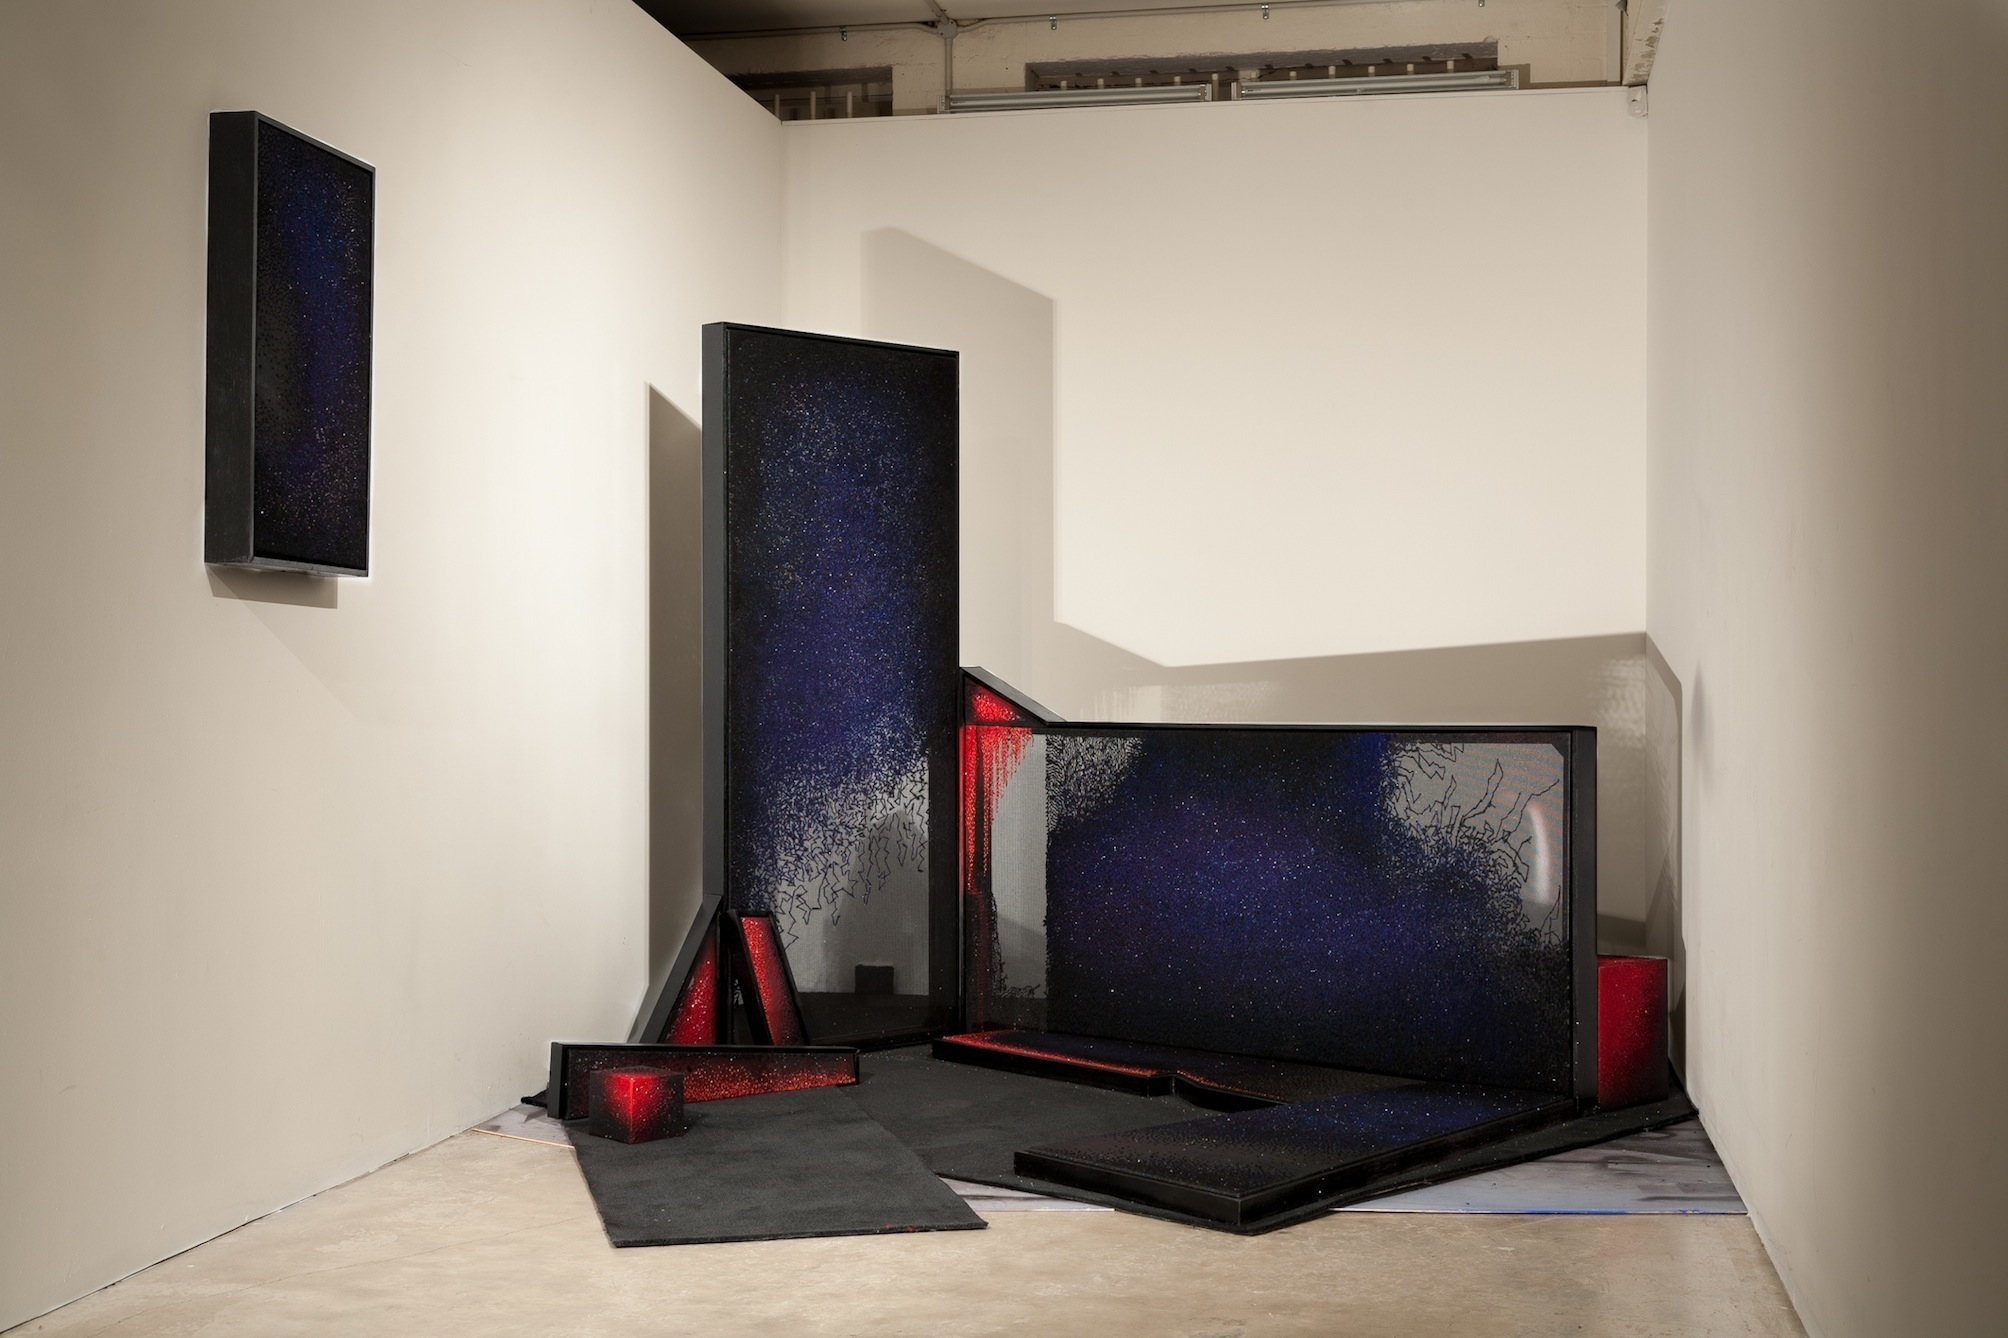 13. Georgina Cue, 'The Centre Doesn't Hold' (Installation Shot), 2015, Embroidery on Tapestry Canvas, Aerosol, Carpet, MDF, Dimensions Variable.jpg